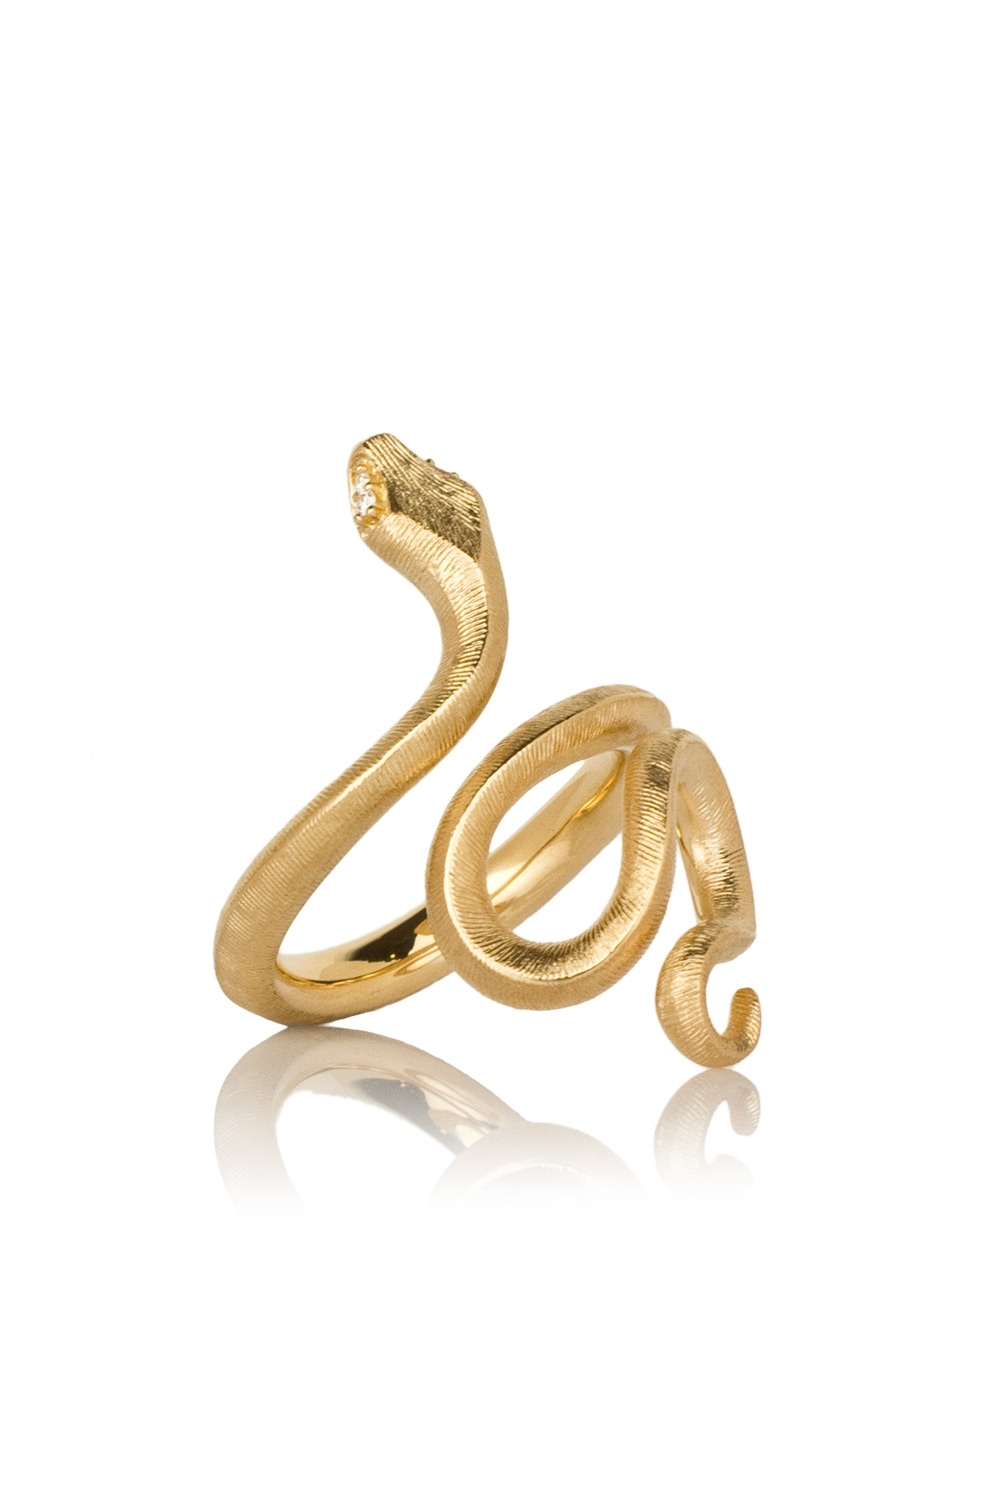 C | Medium Snake Ring In Yellow Gold With Diamonds | Laprendo With 2018 Snake Toe Rings (View 1 of 15)